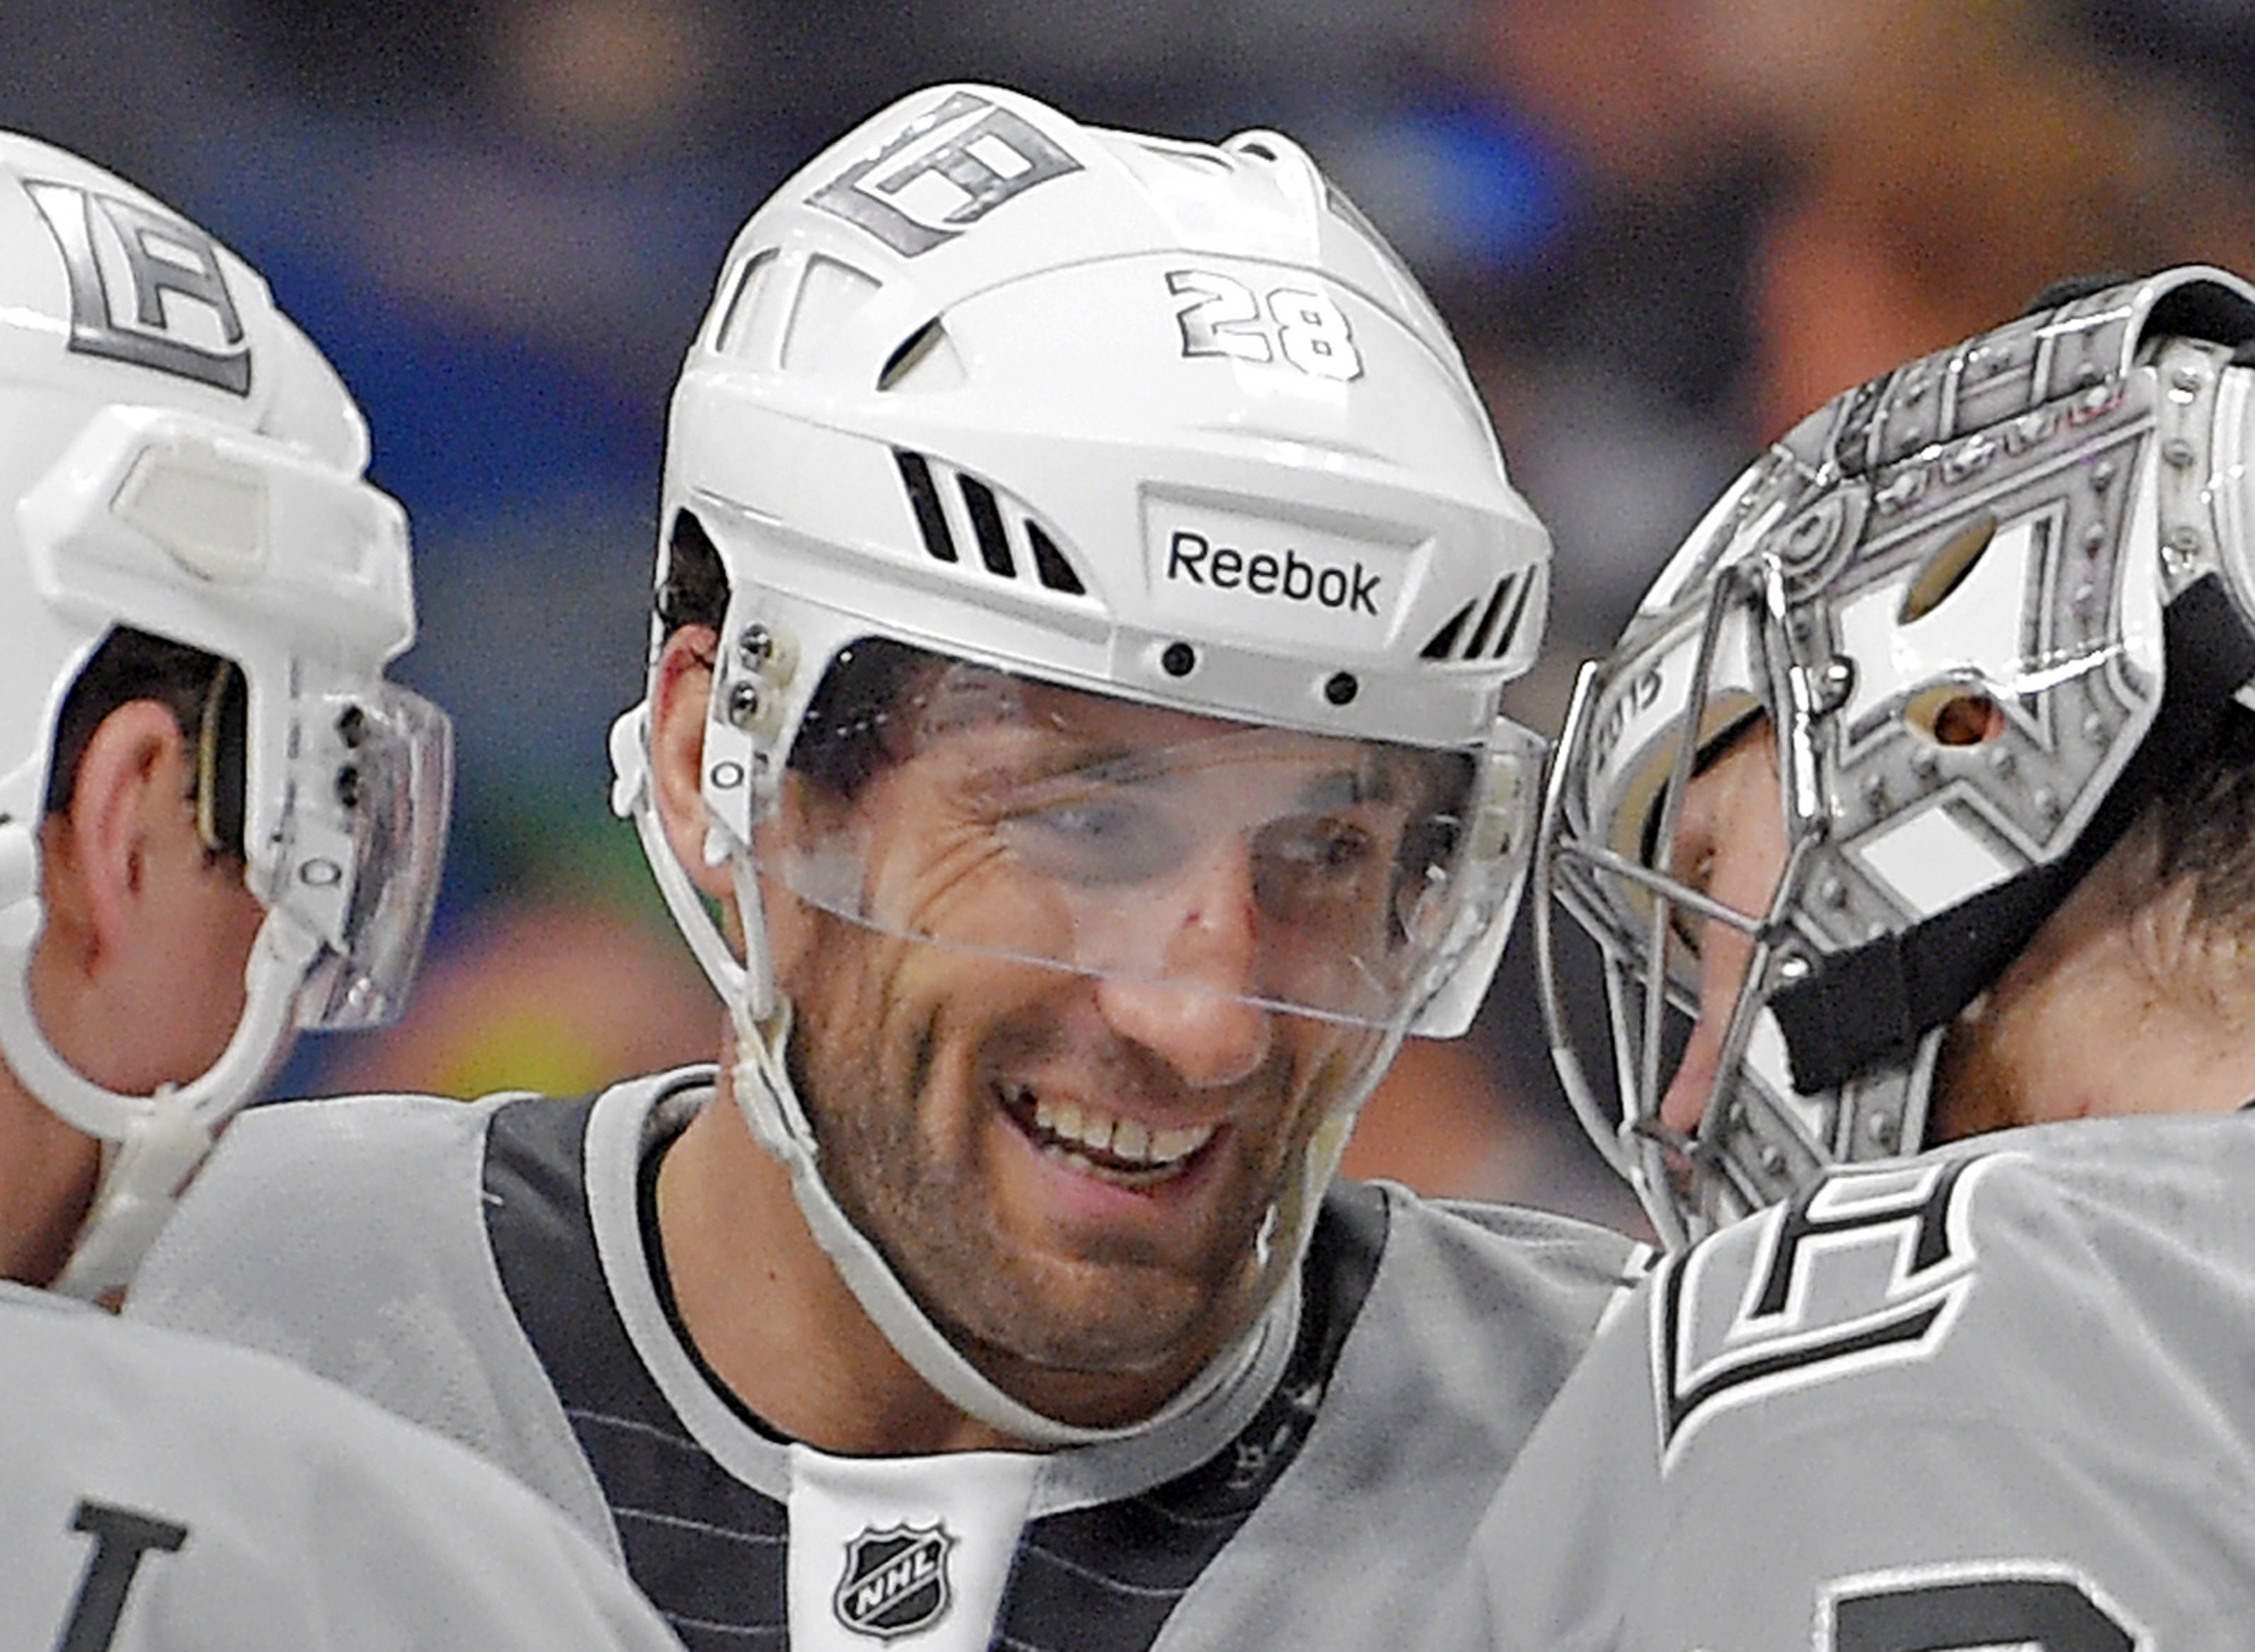 FILE - In this April 11, 2015, file photo, Los Angeles Kings center Jarret Stoll is seen with goalie Jonathan Quick, right, and Tyler Toffoli after an NHL hockey game against the San Jose Sharks in Los Angeles. Stoll has been charged with felony cocaine p